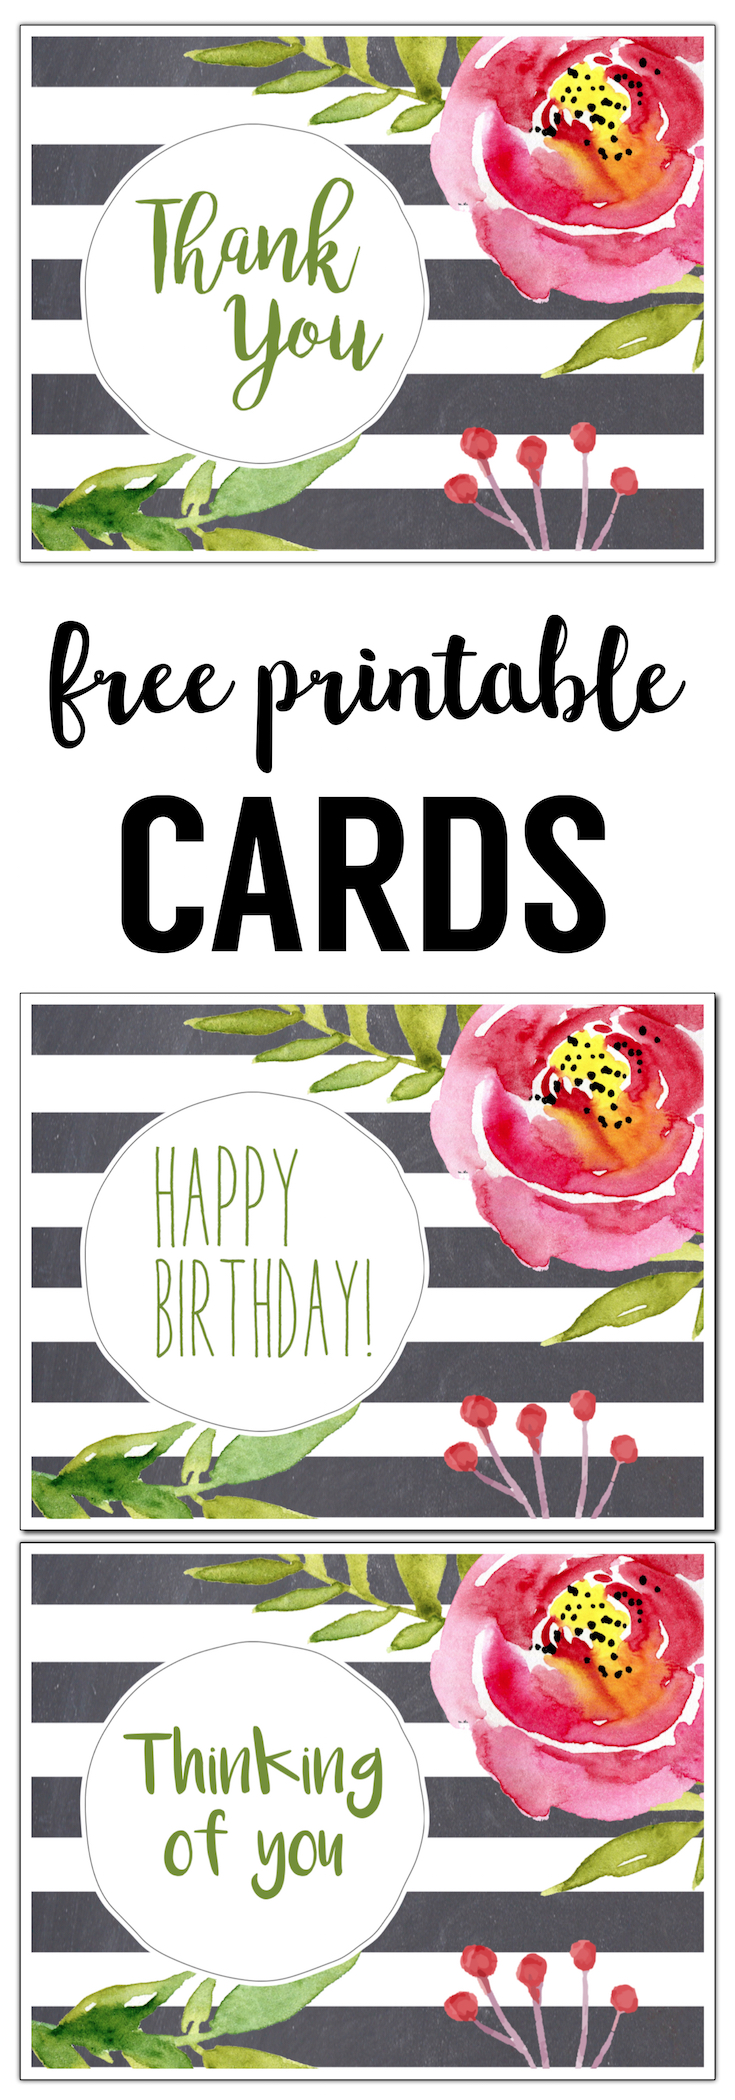 Free Printable Greeting Cards {Thank You, Thinking of You, Happy Birthday}. Print these easy DIY watercolor floral cards. Free printable thank you card | Free printable birthday card | Free printable thinking of you card.